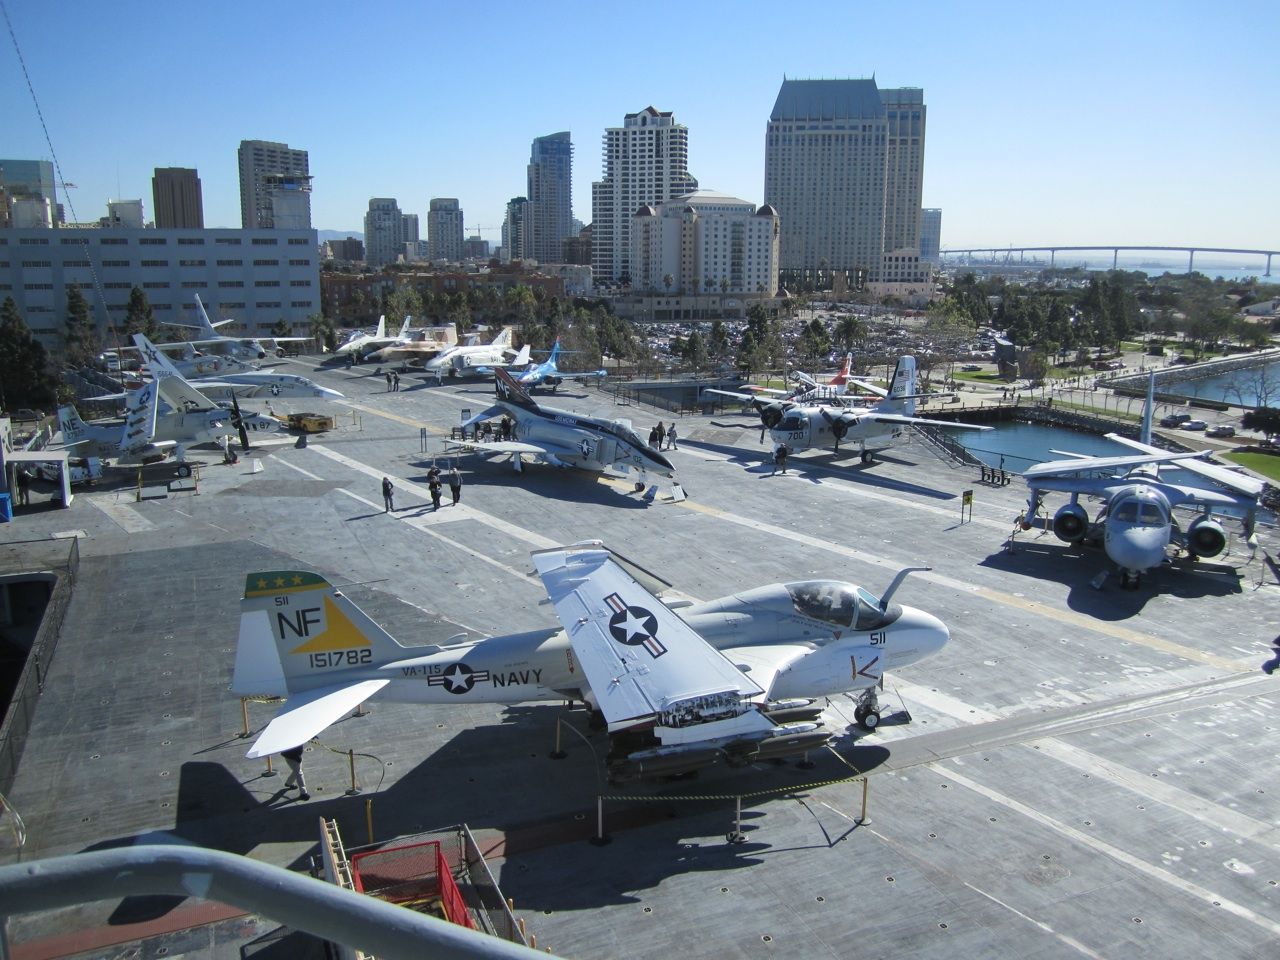 The Hanger Deck Aboard The USS Midway With The City Of San Diego In The Background